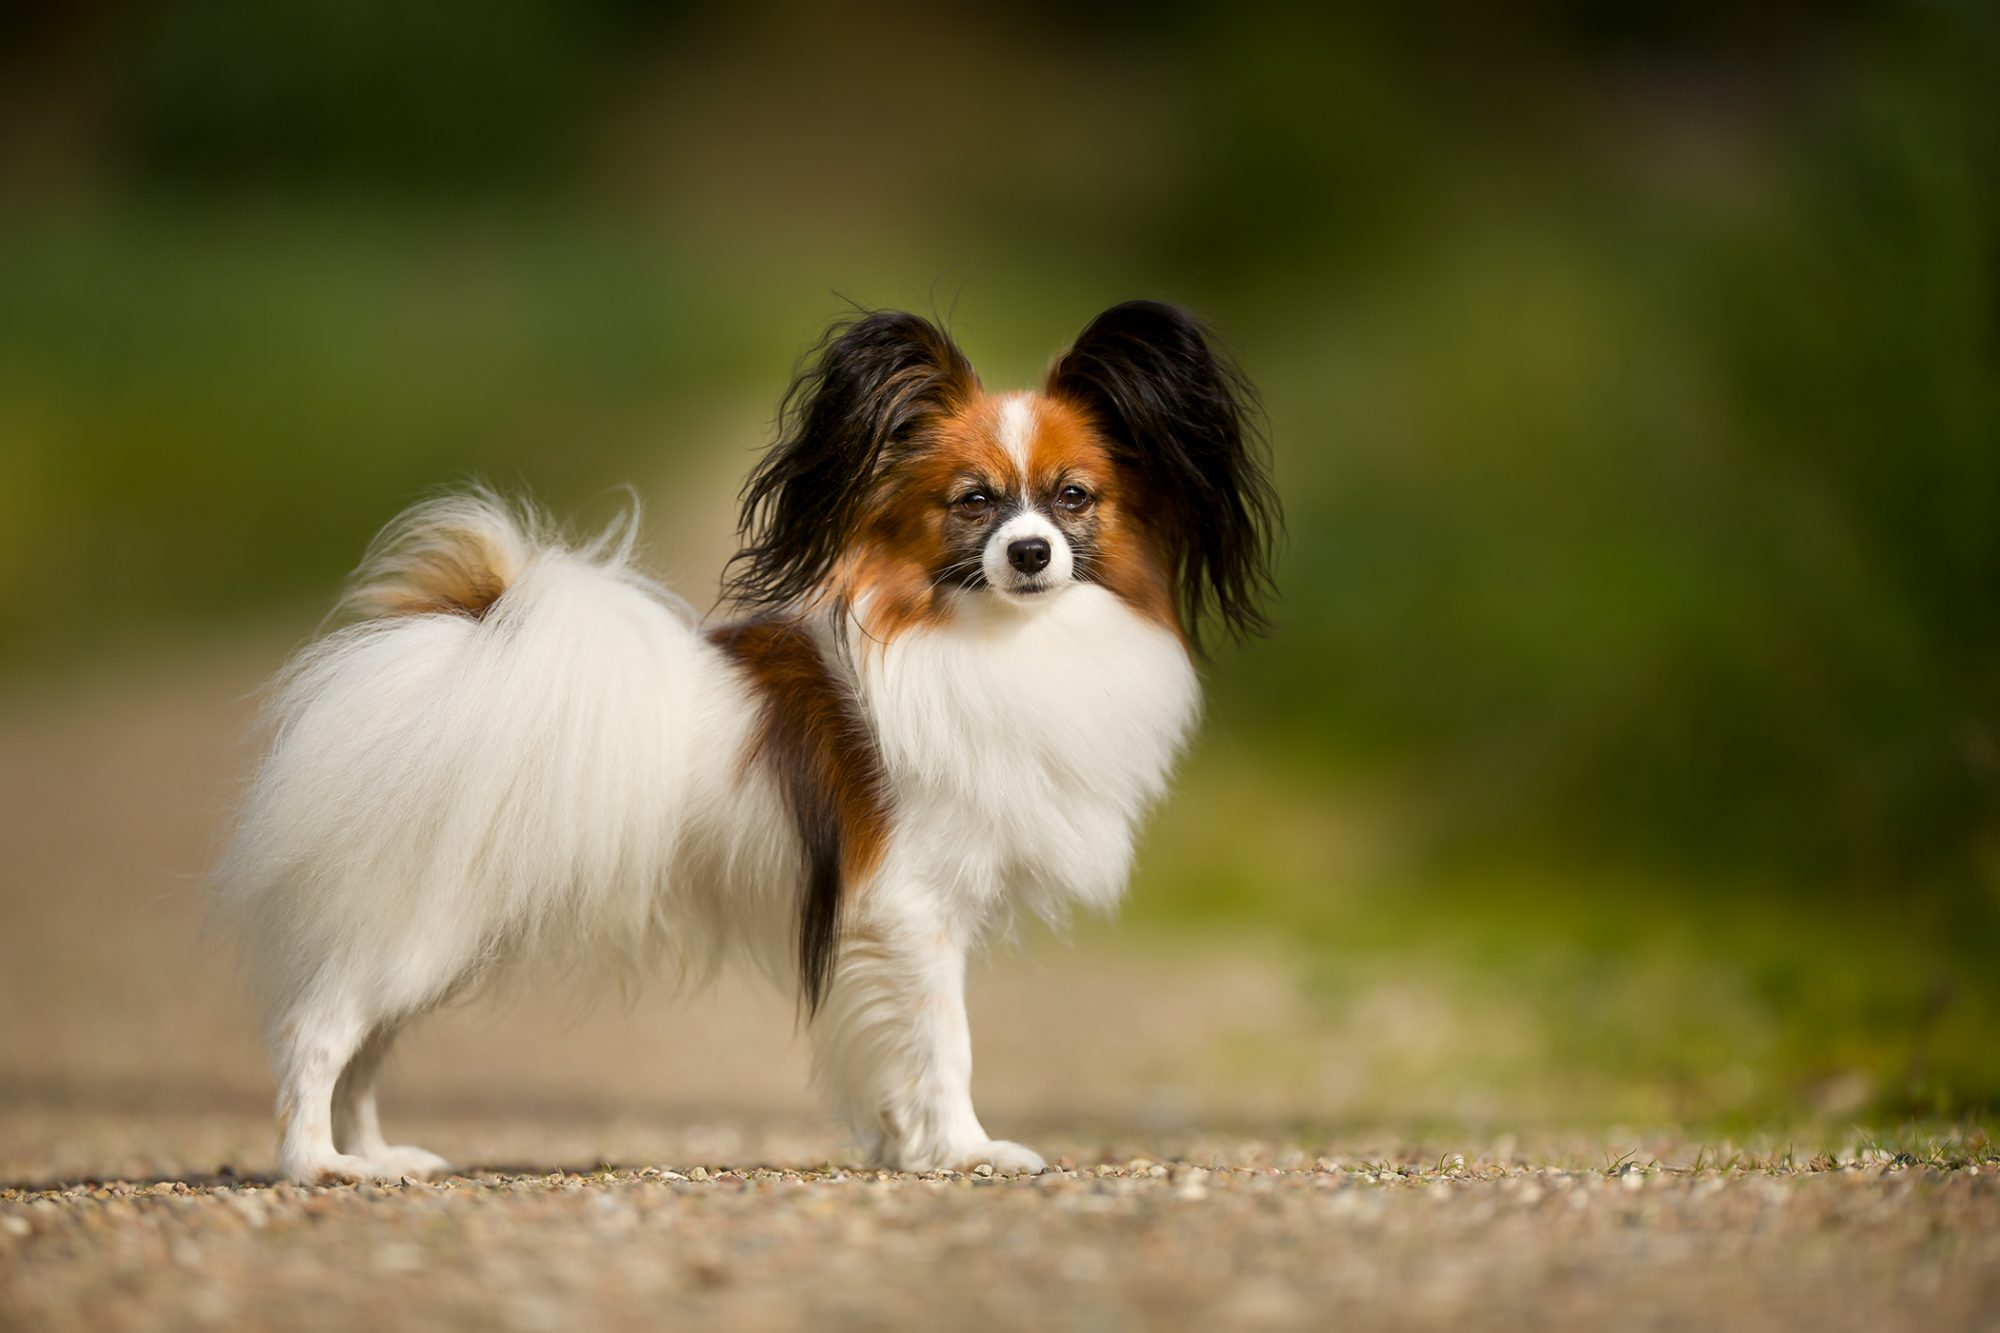 Papillion with red, white and dark fur stands profile-facing on gravel road